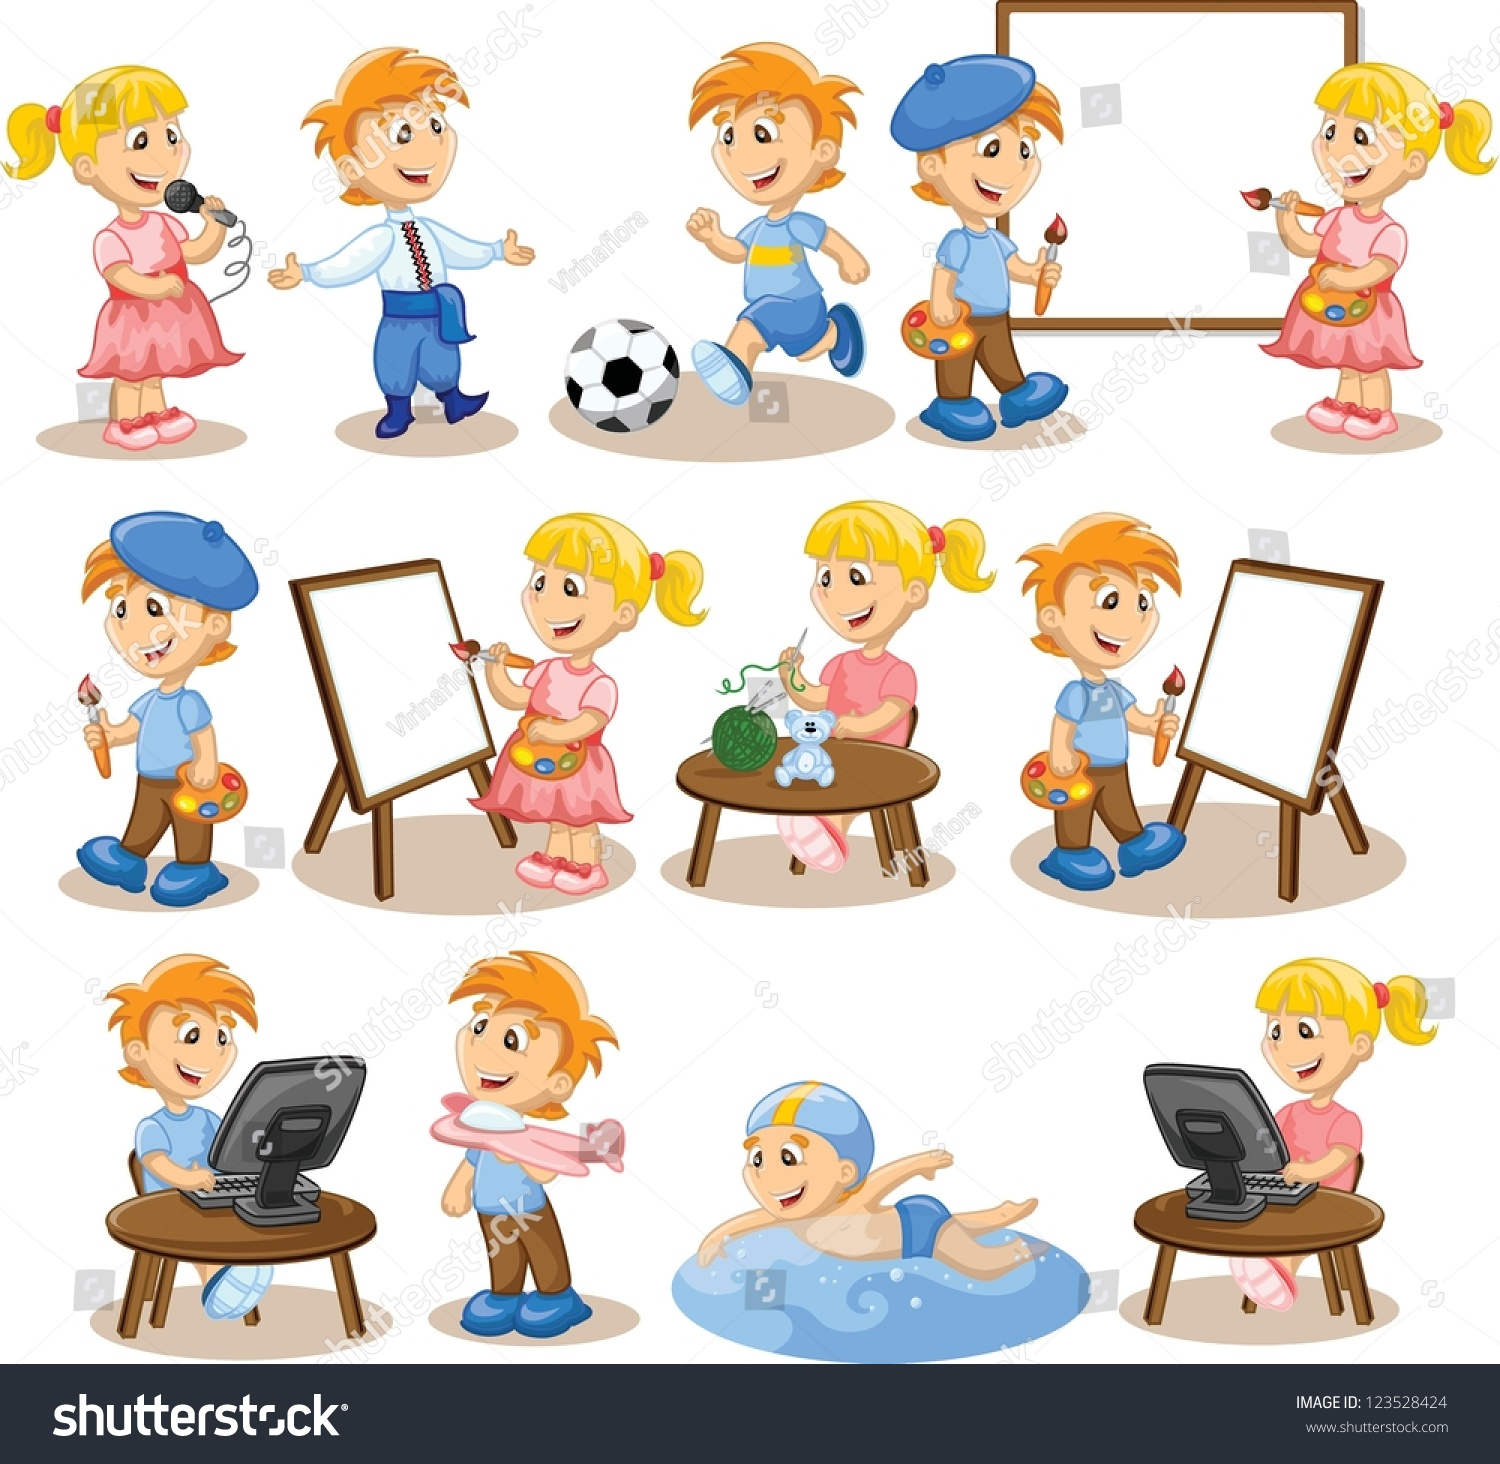 Children Are Engaged In The Hobbies Stock Photo